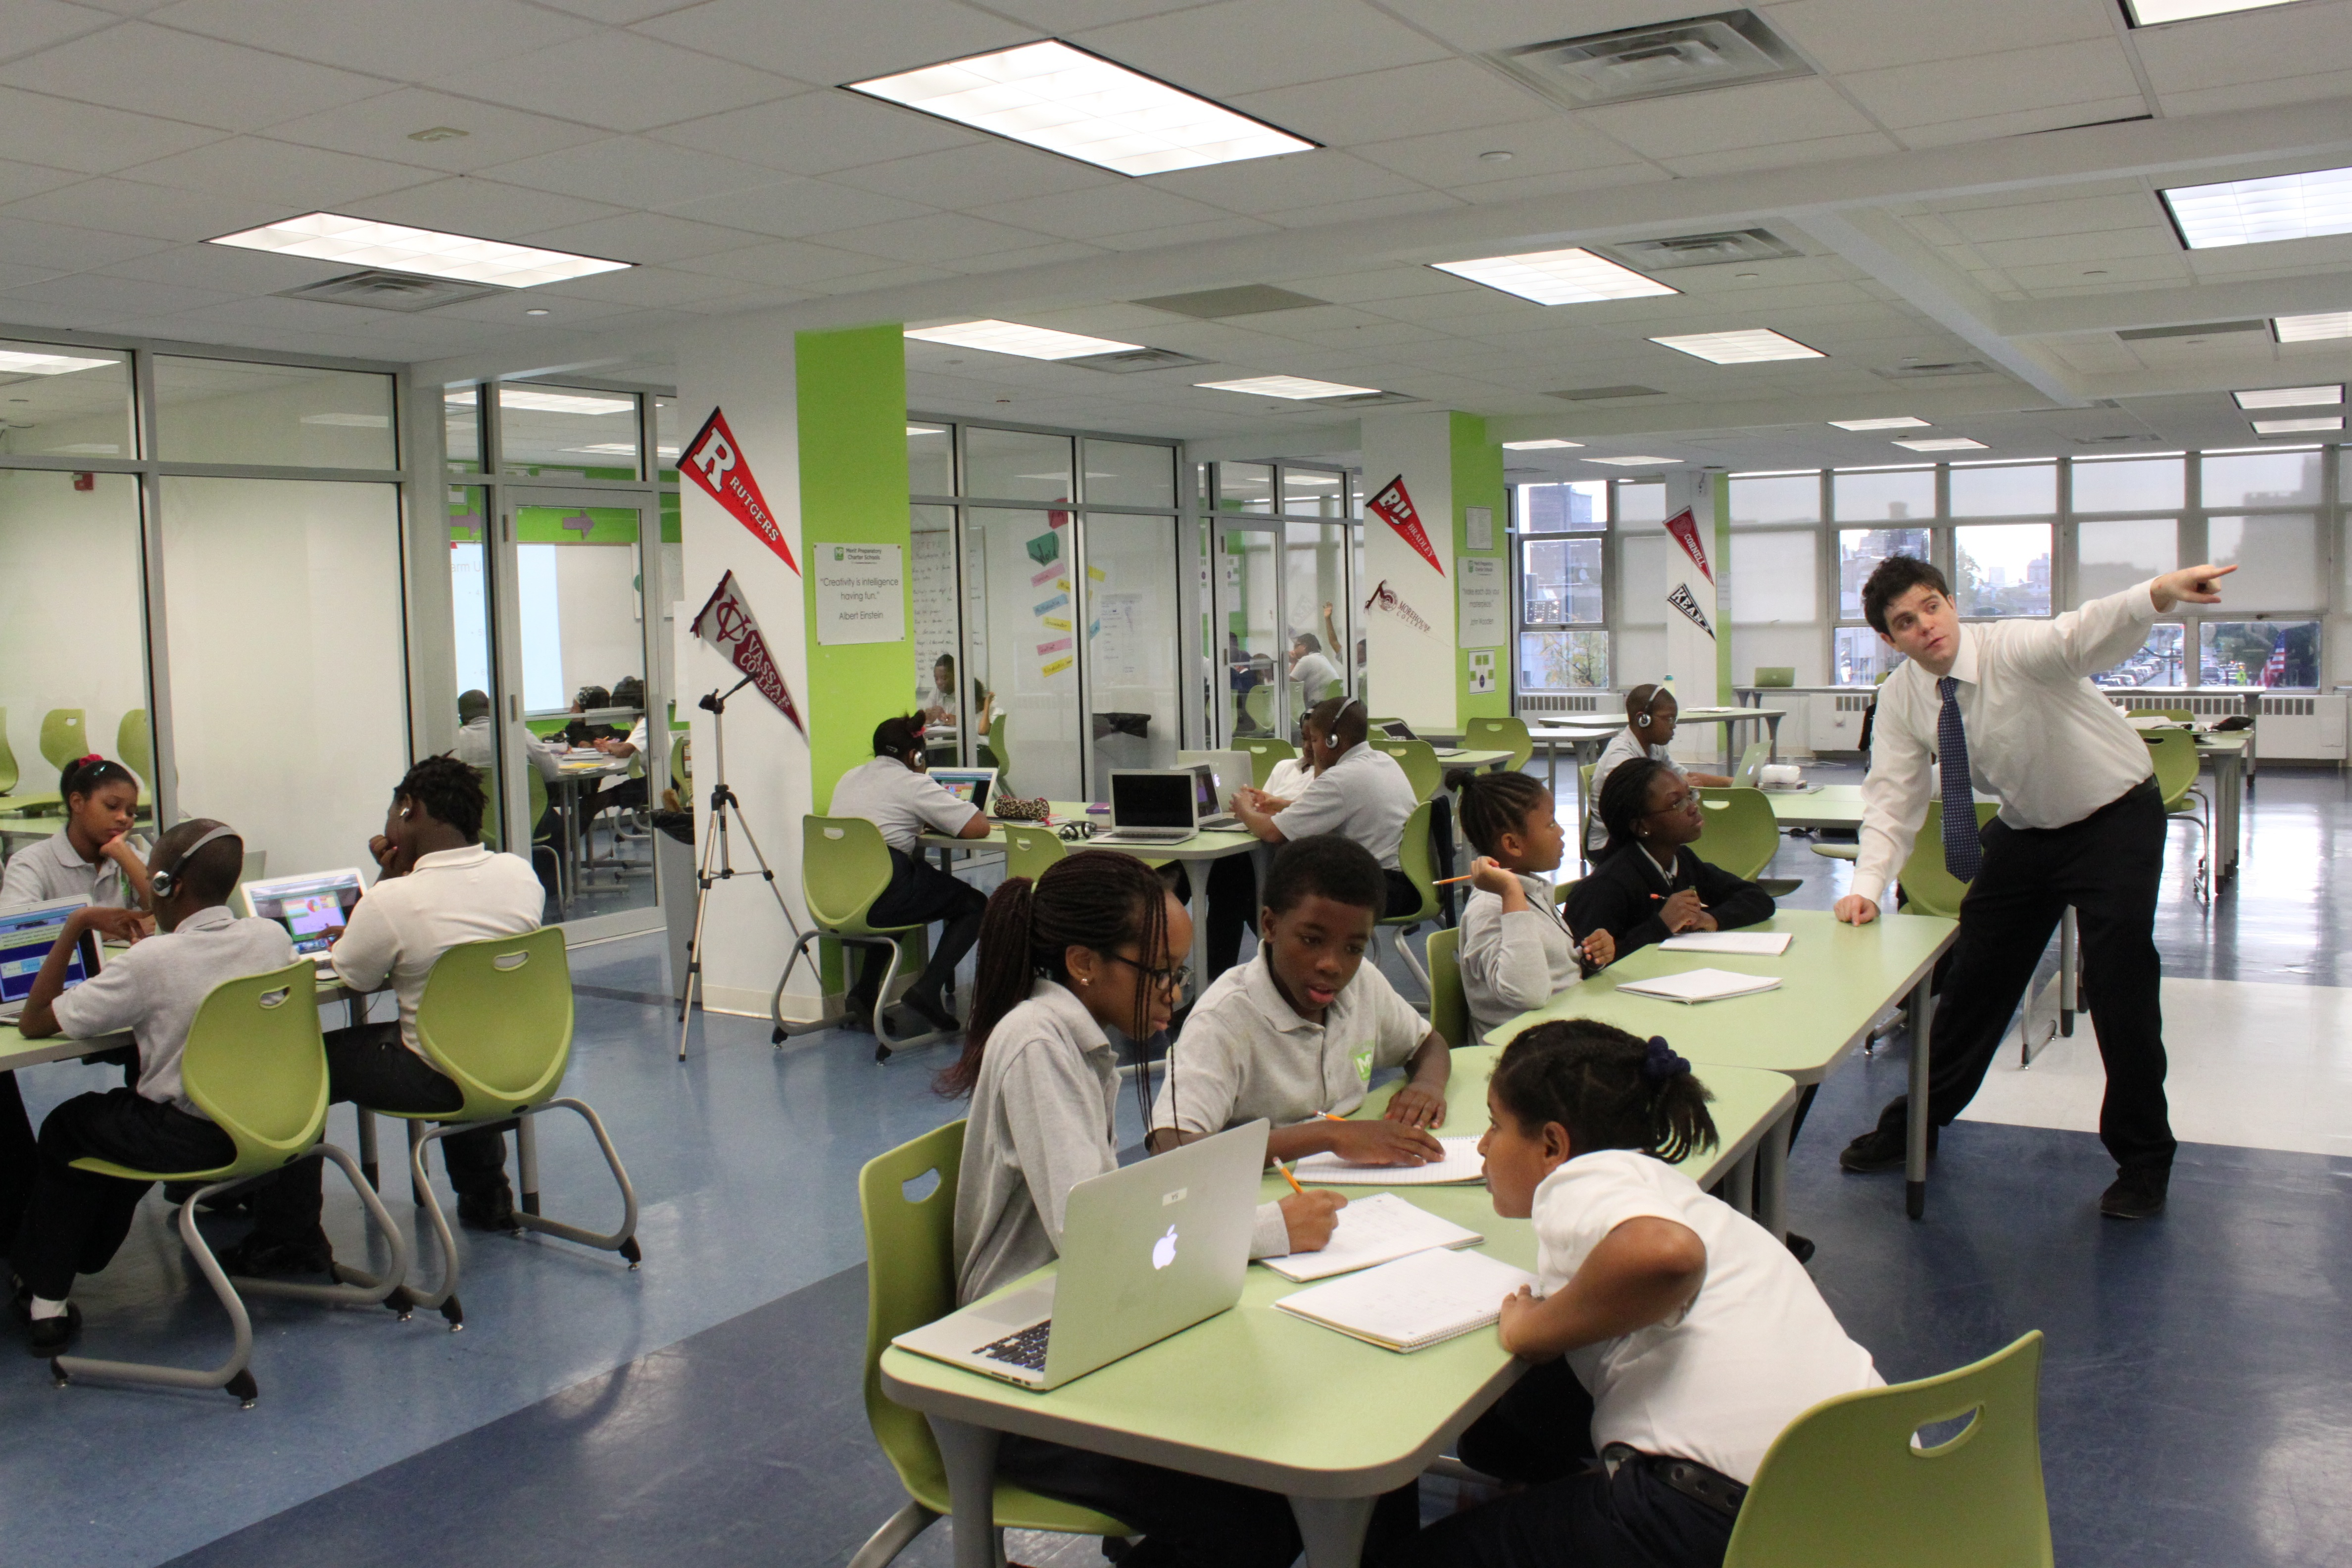 Visting Touchstone Education's Merit Prep Charter School in Newark, NJ